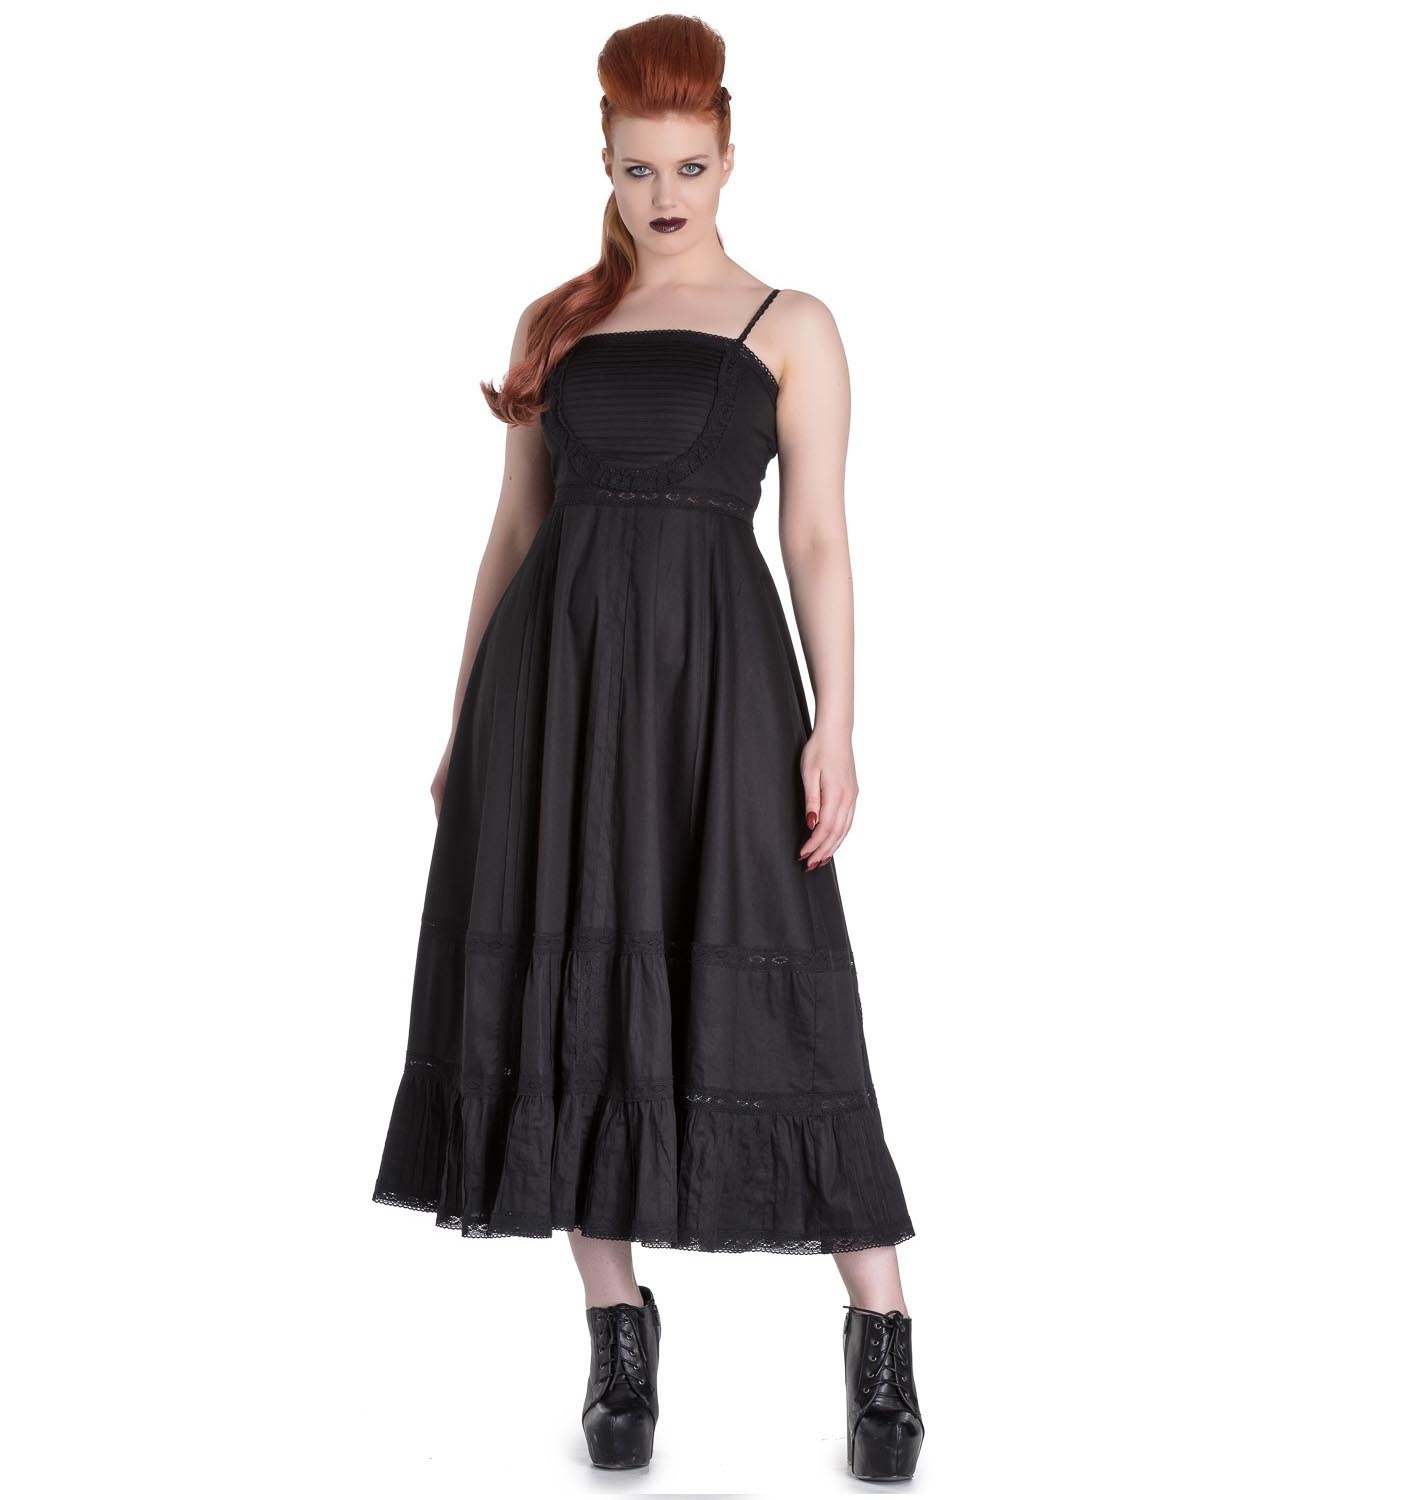 Hell-Bunny-Spin-Doctor-Goth-Maxi-Dress-ELIZABELLA-Black-All-Sizes thumbnail 7